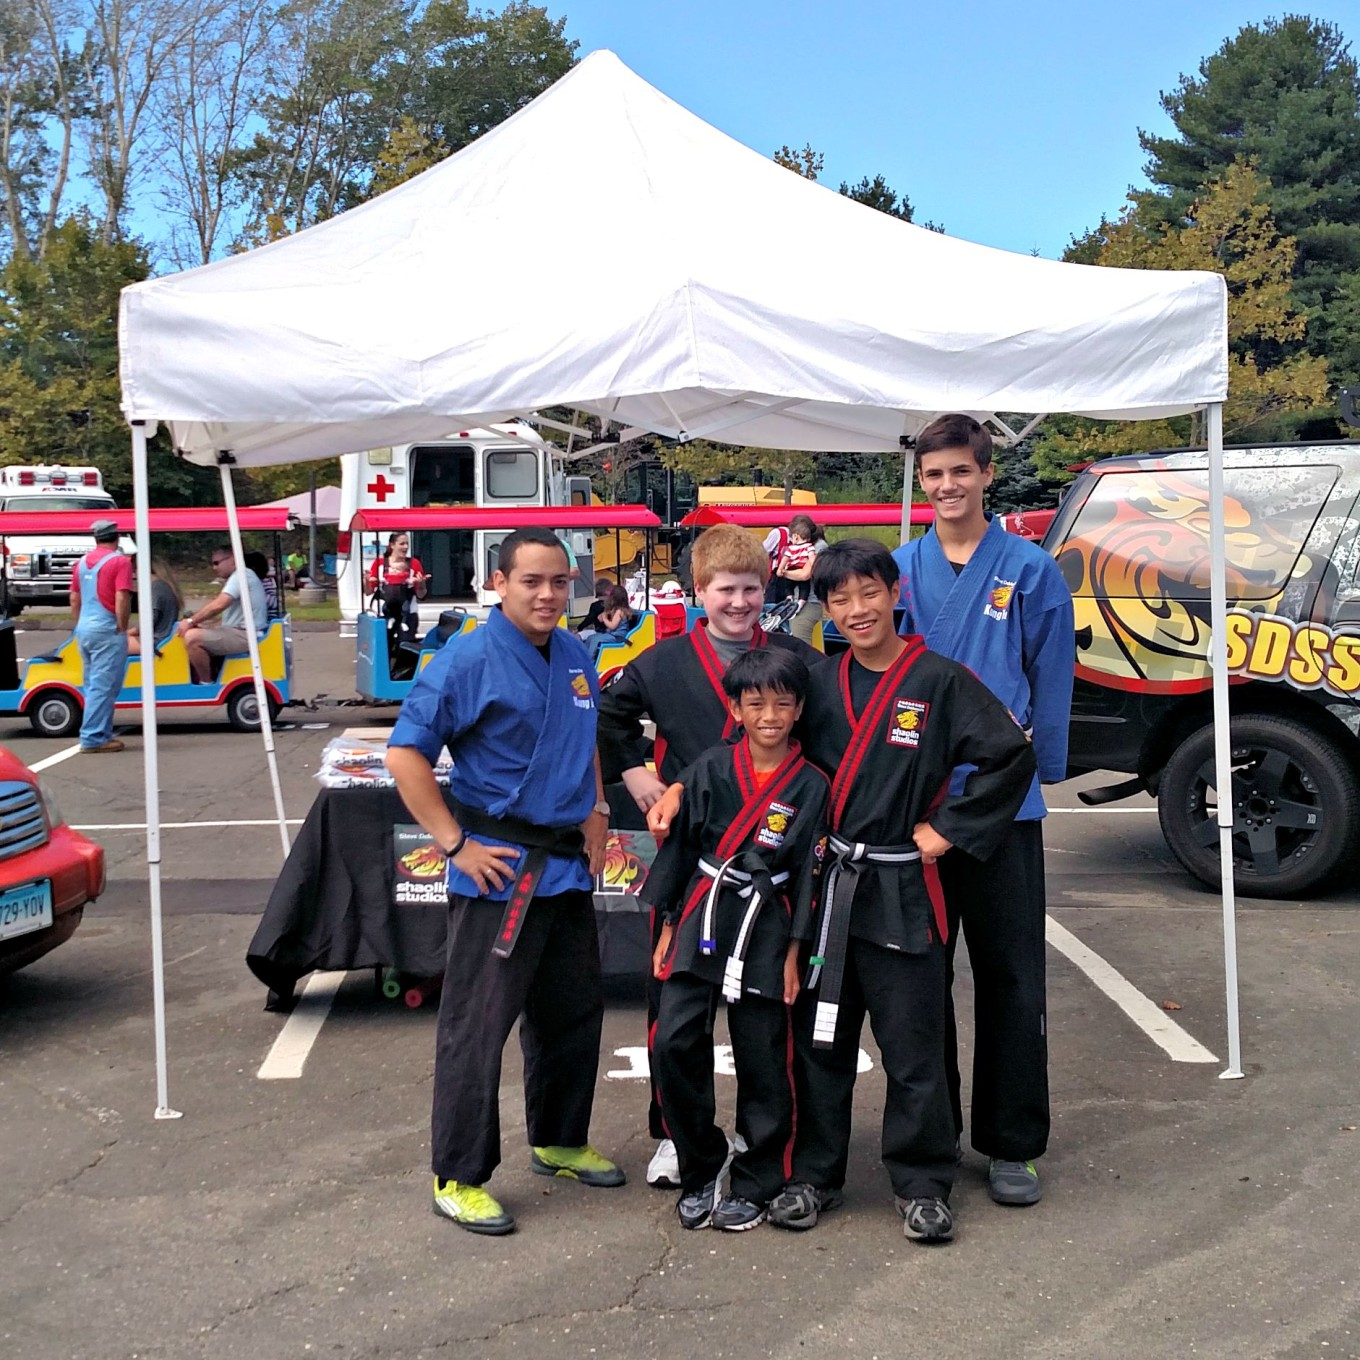 Steve Demasco Shaolin Studios of Fairfield attends Touch A Truck Event on September 20, 2015